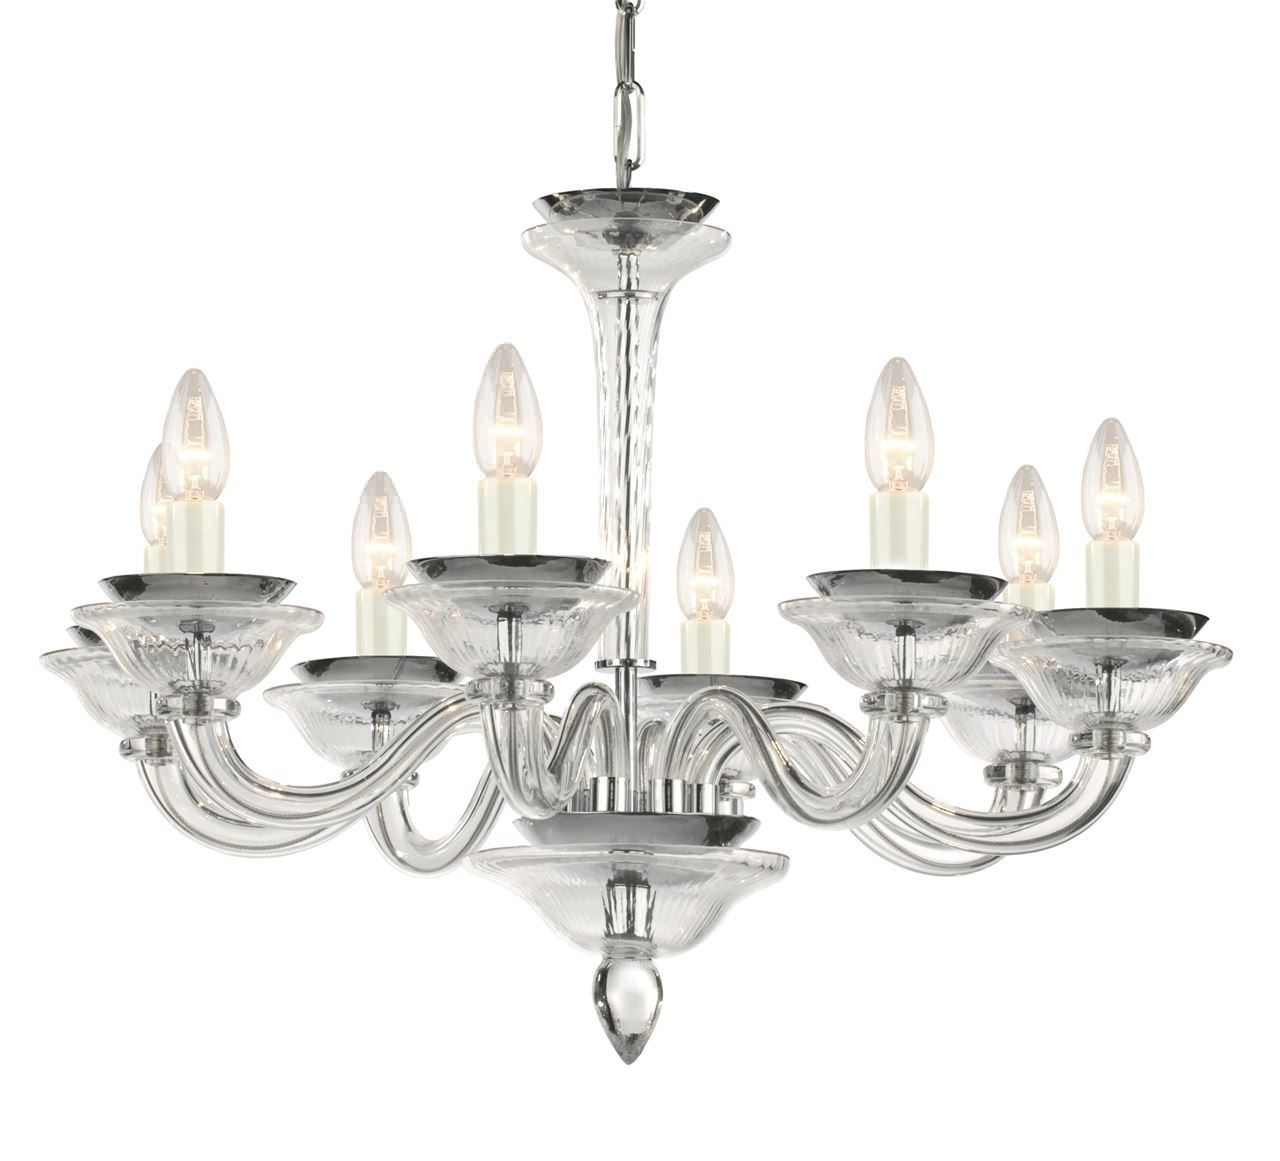 12 Best Of Traditional Chandelier